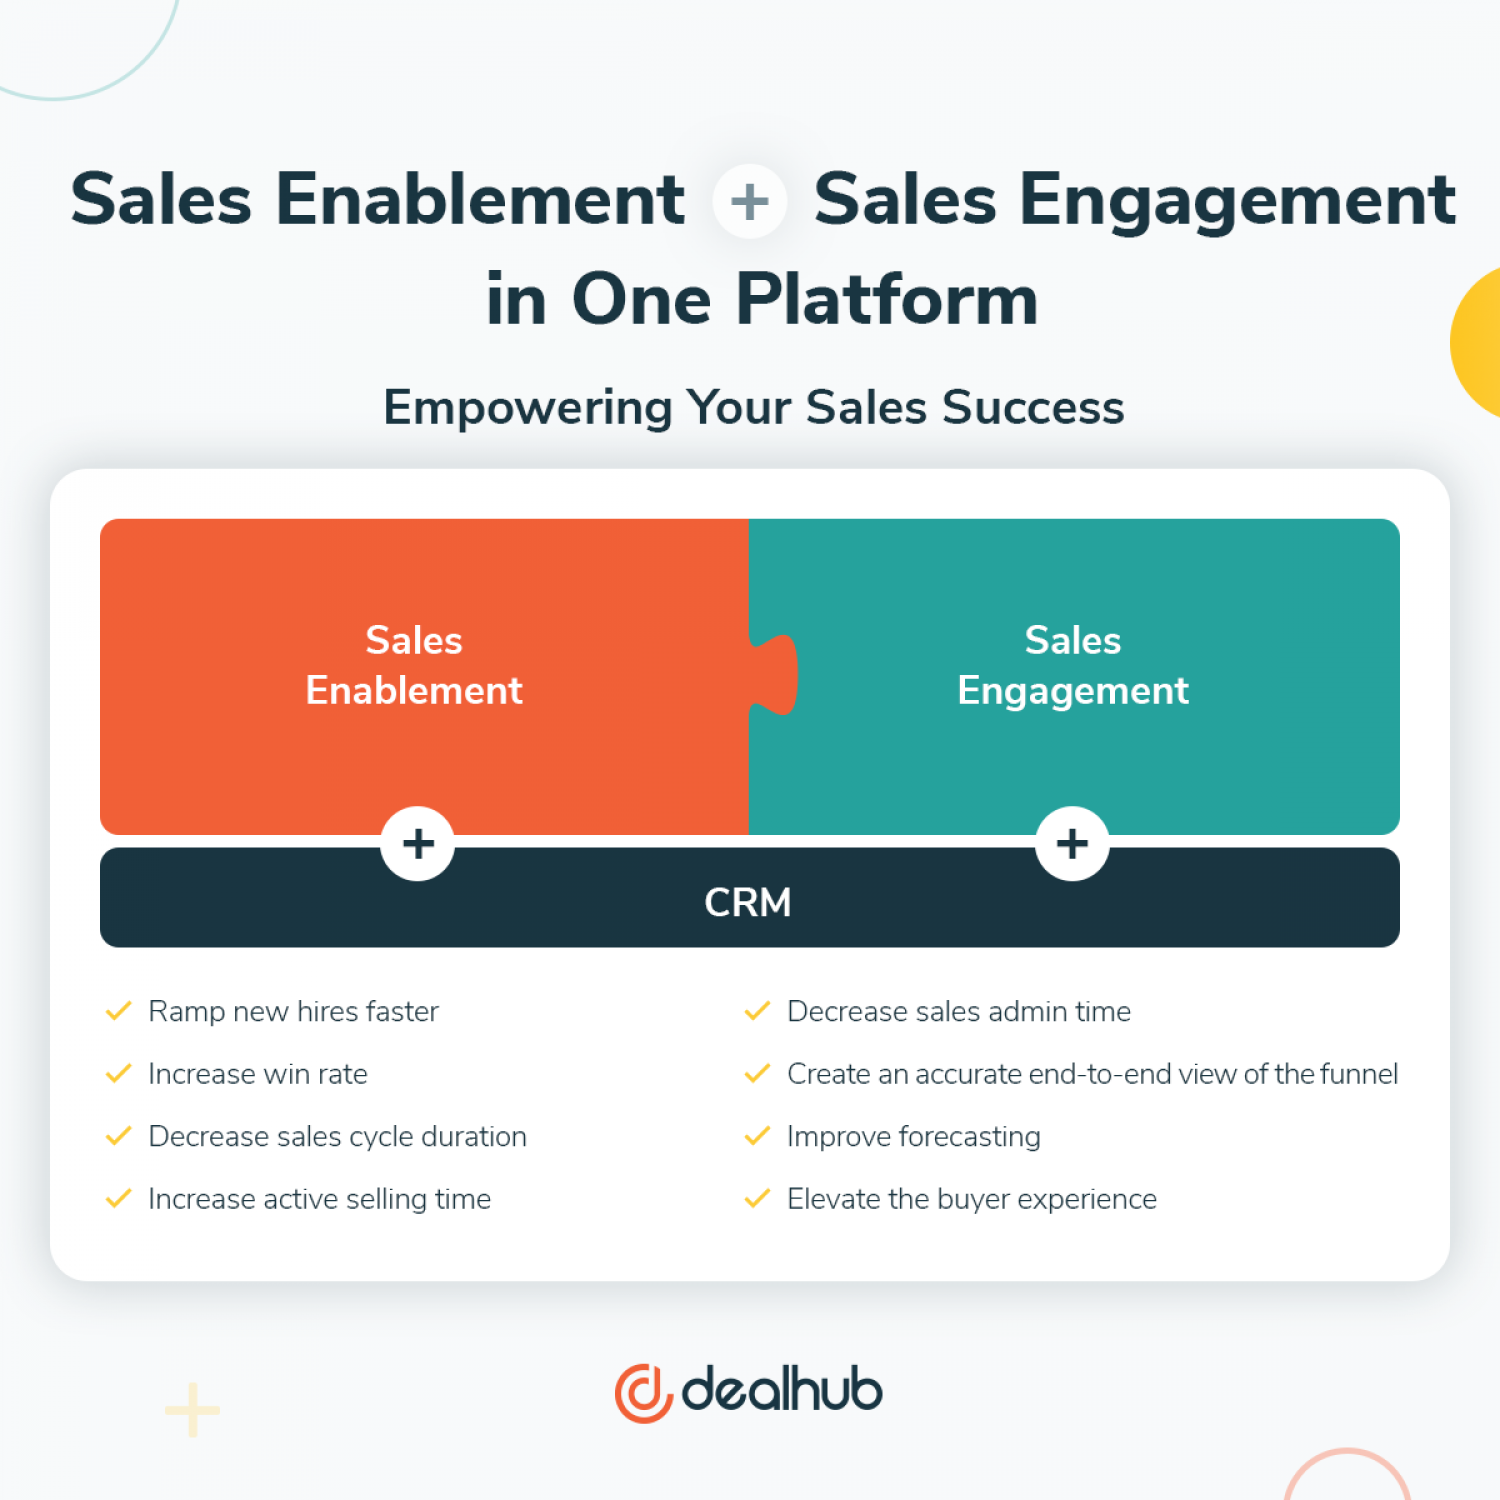 Sales Enablement and Sales Engagement in One Platform Empowering Your Sales Success Infographic